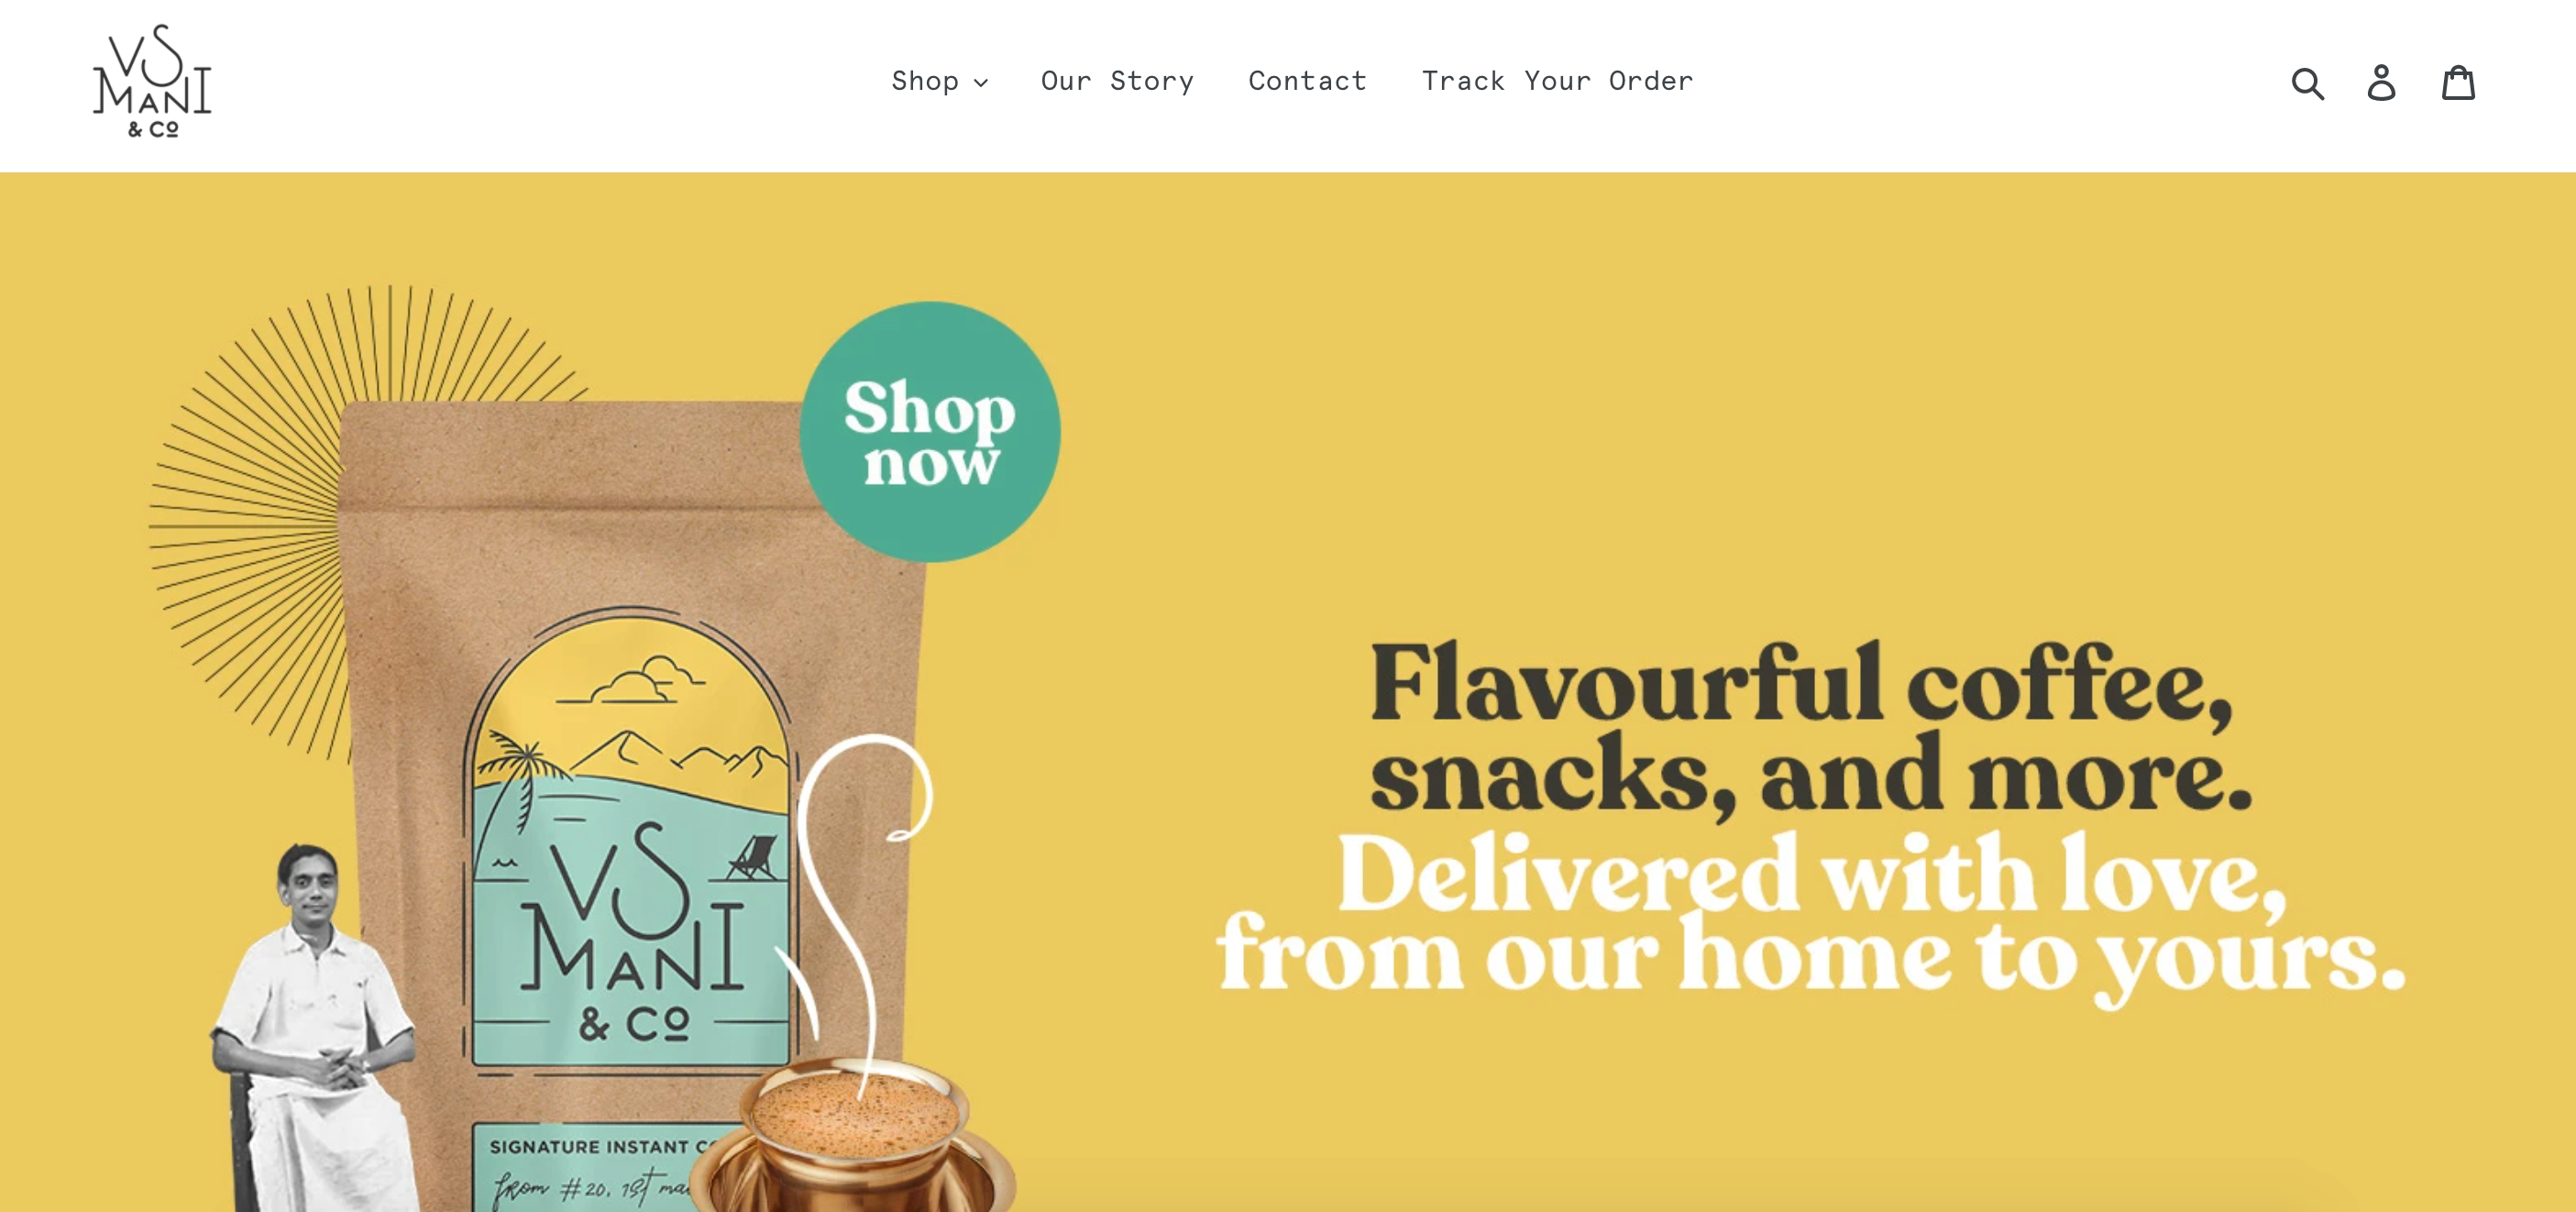 value proposition in your shopify store design